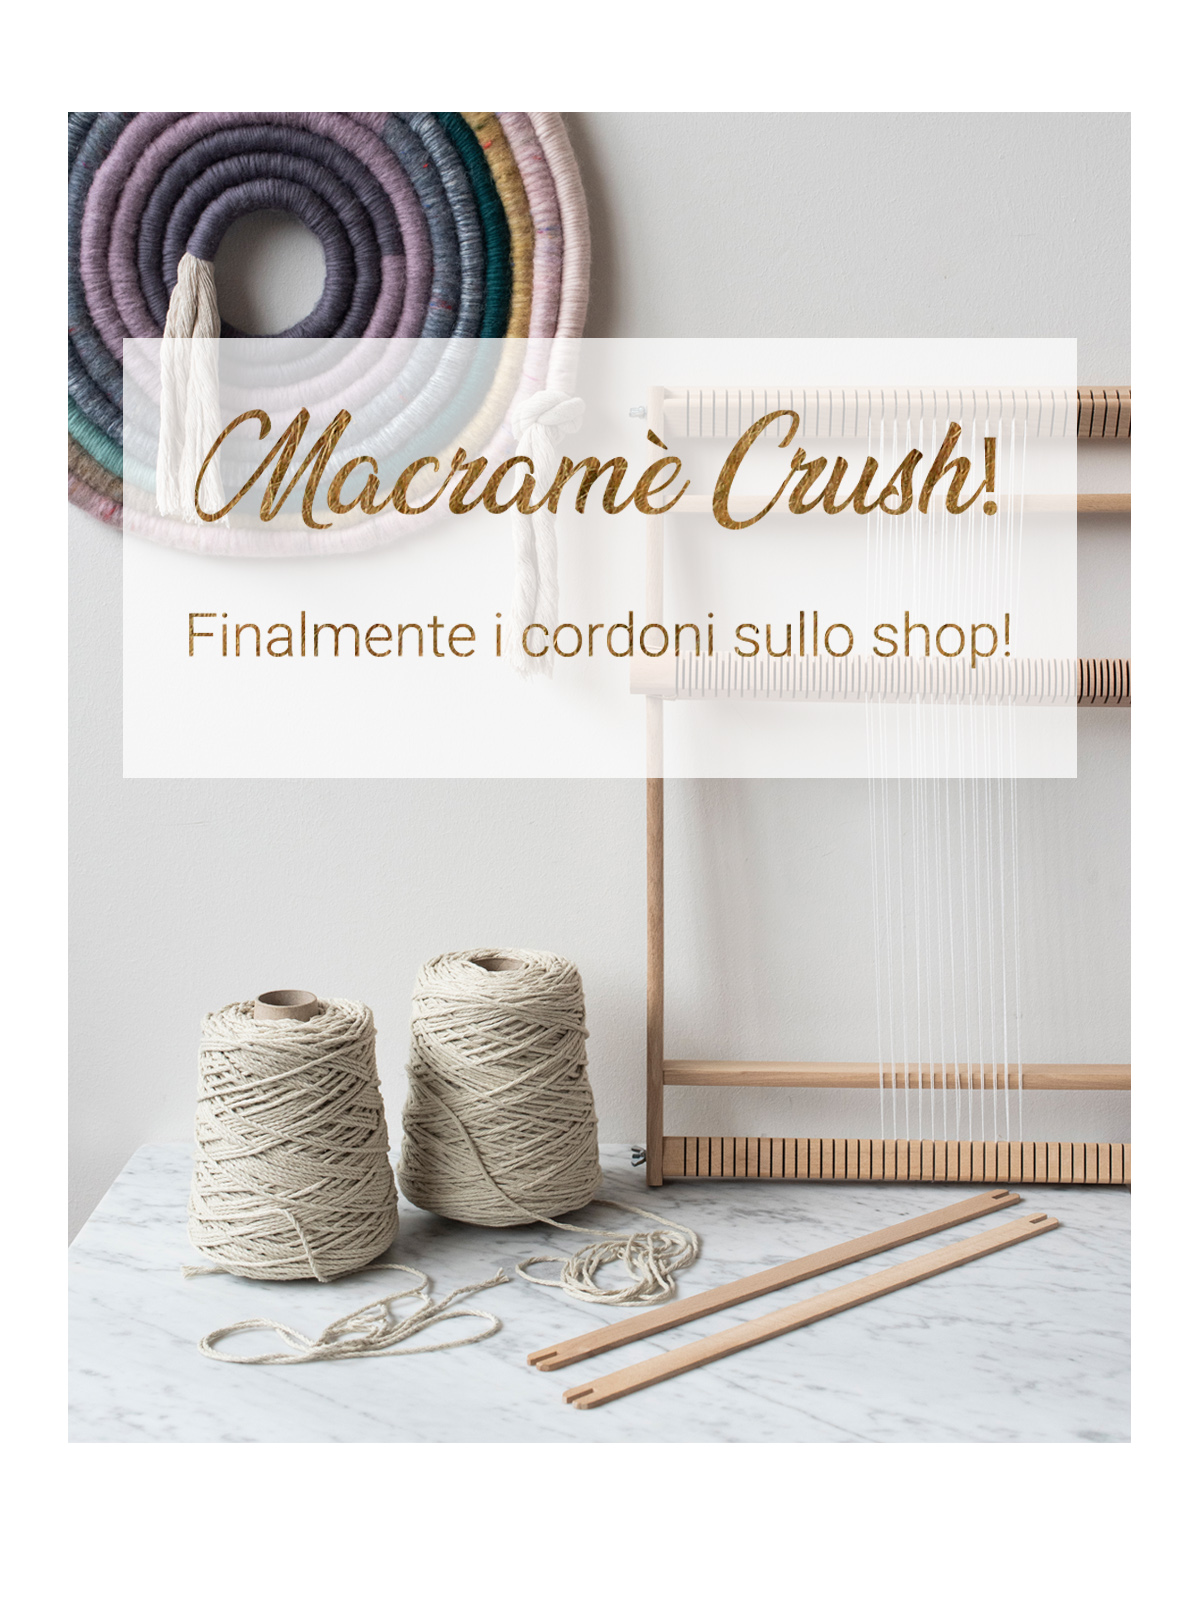 Macramè Crush! Finalmente i cordoni sullo shop!